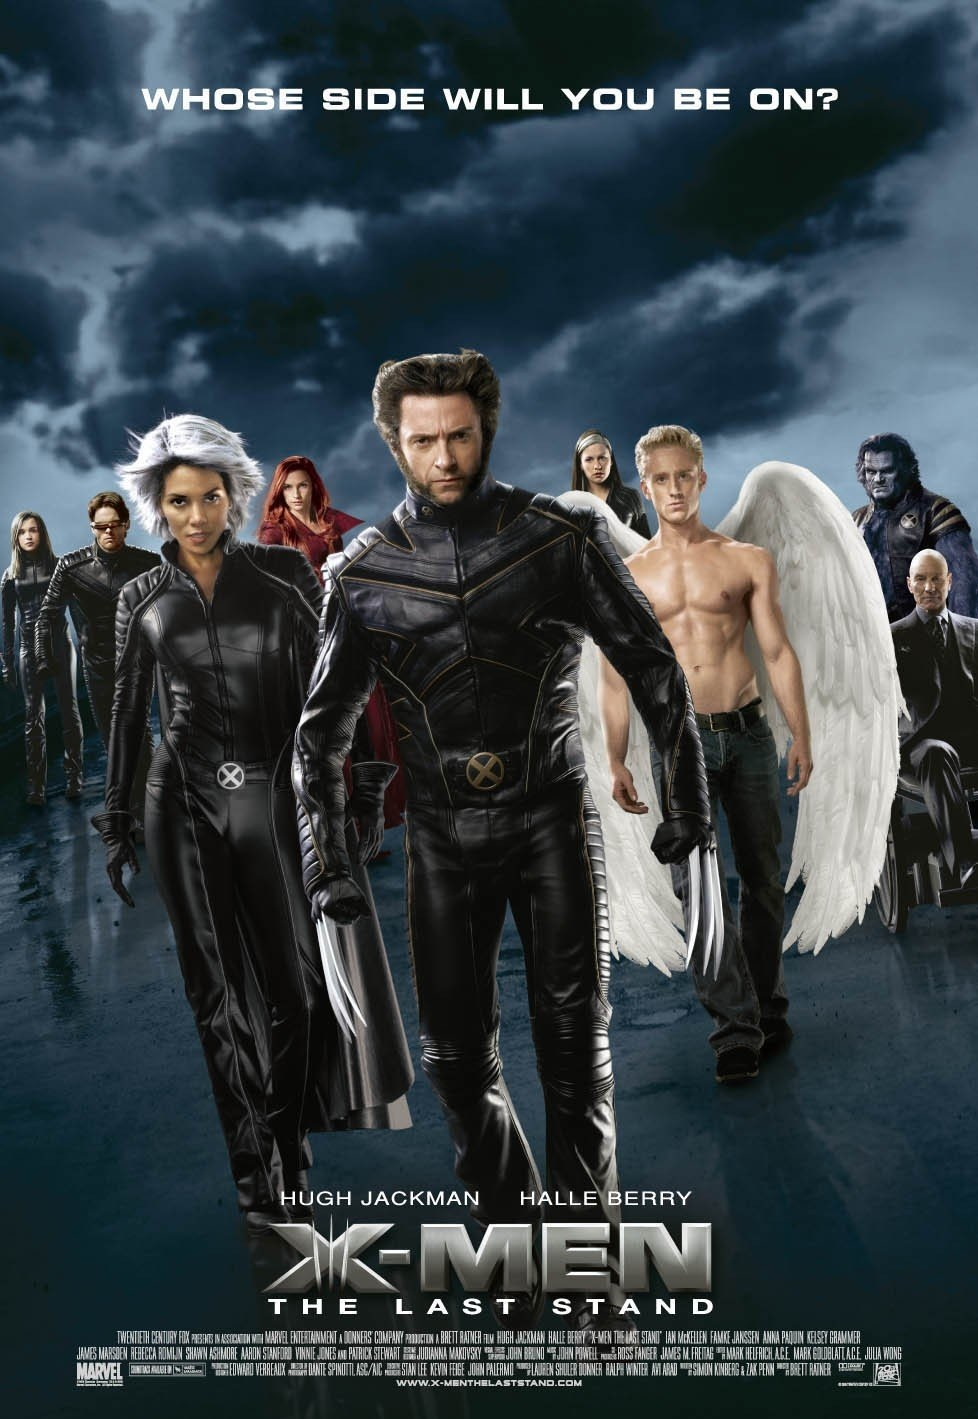 the wolverine full movie in hindi free download hd 720p